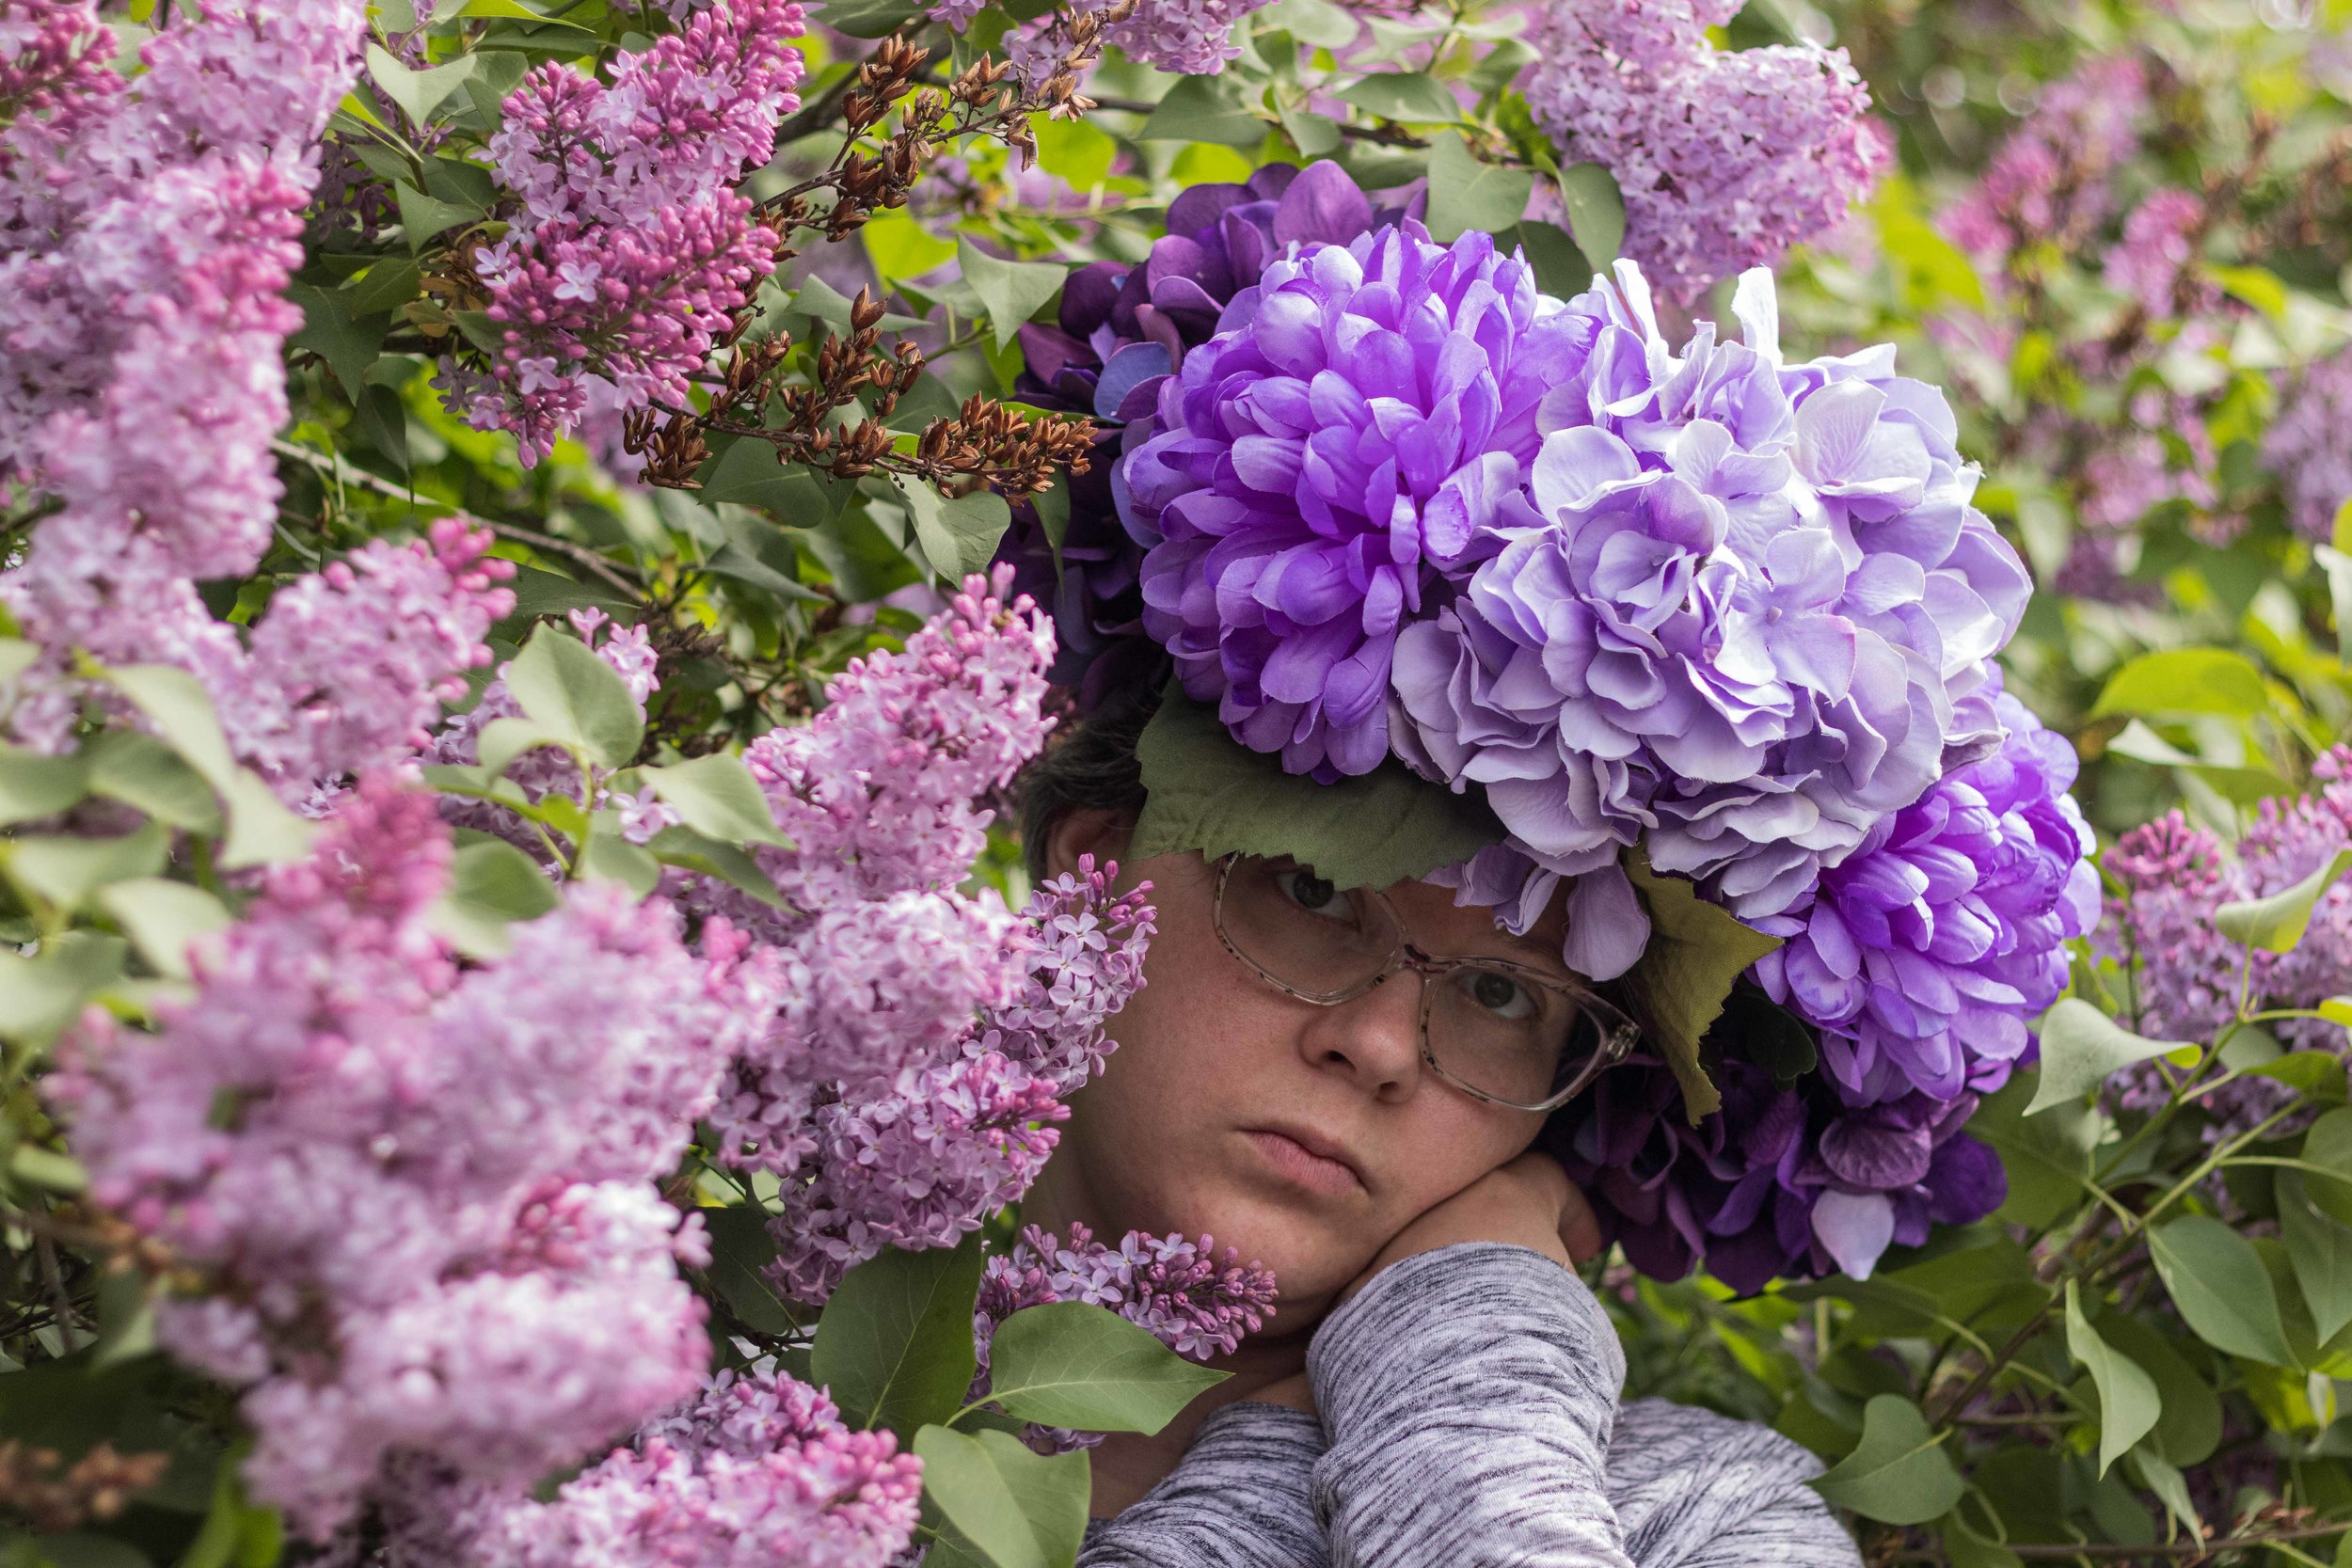 My recent selfie with my purple faux flower crown and the blooming lilac hedge.